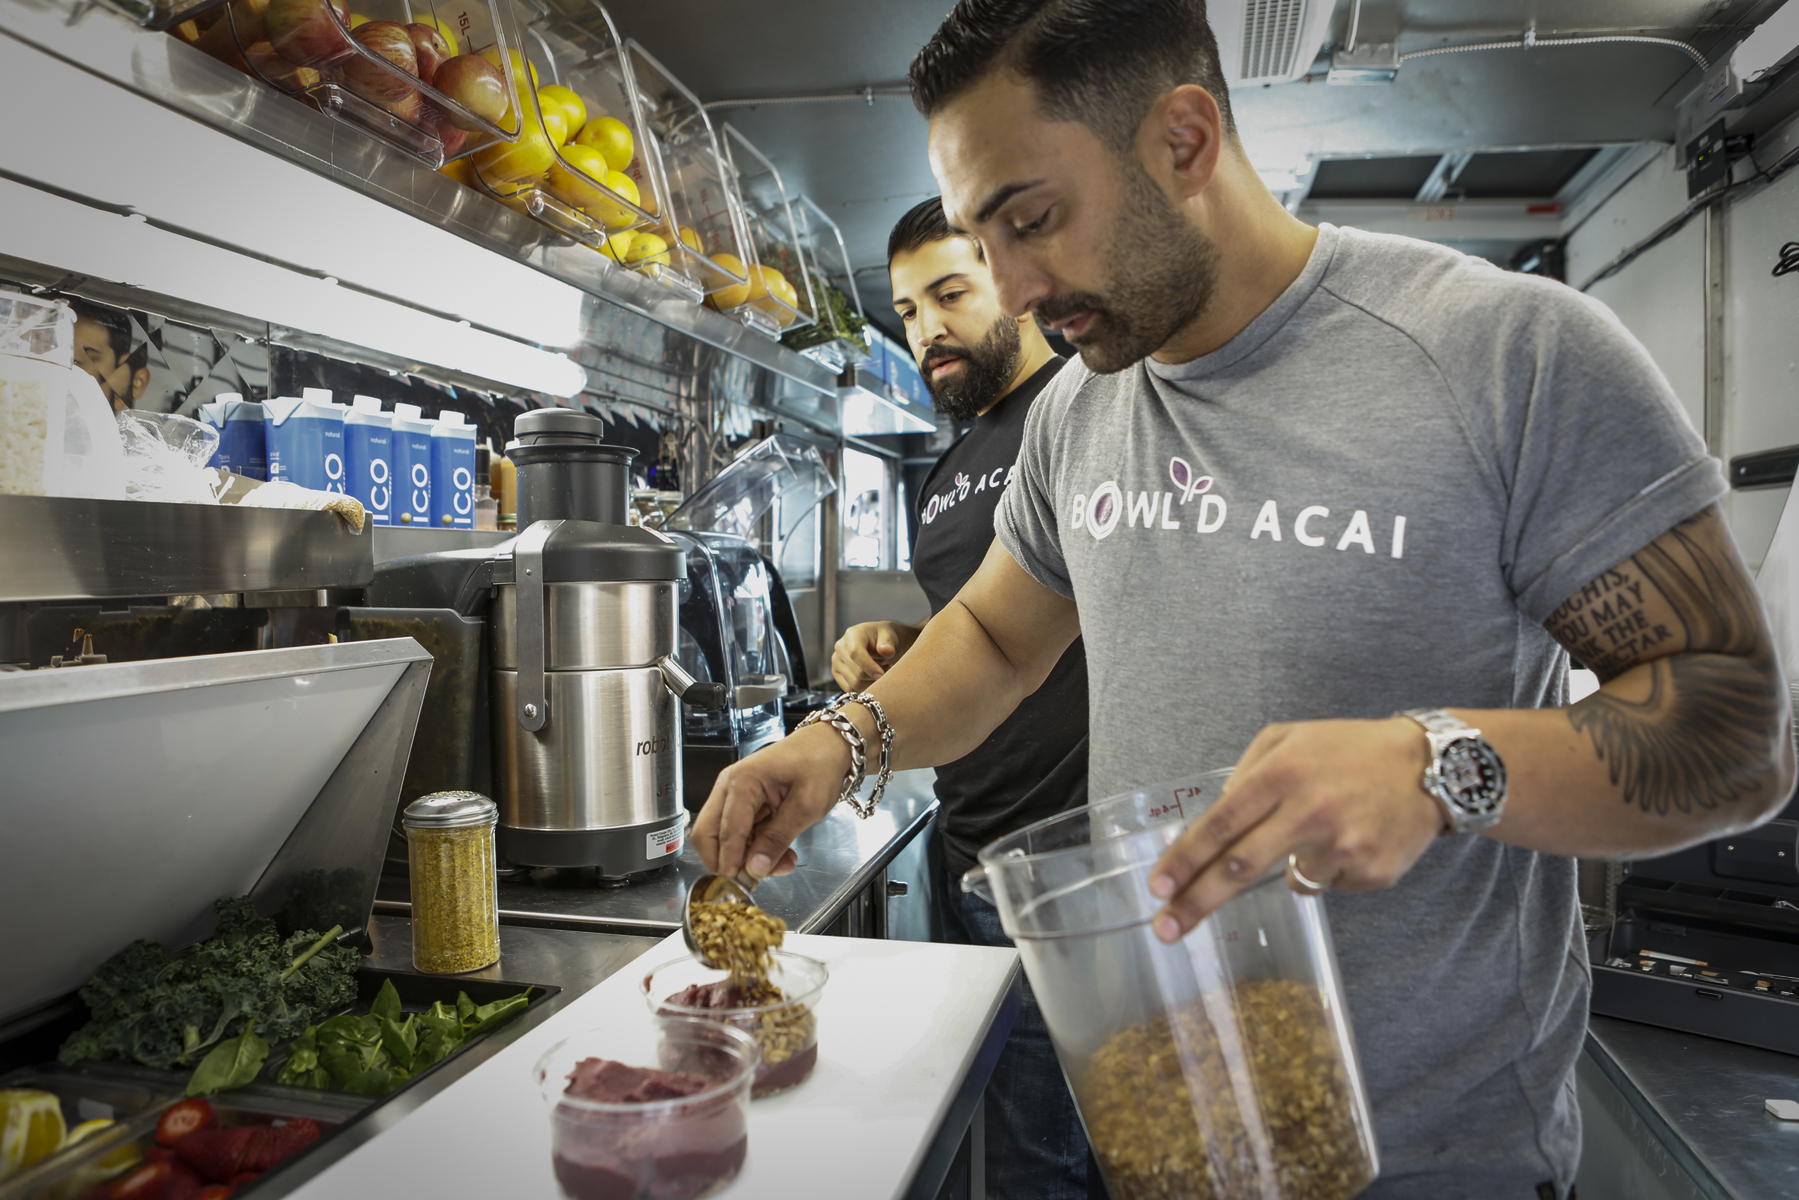 3 Pro Tips for Buying a Food Truck Designed to Enable Year-Over-Year Growth